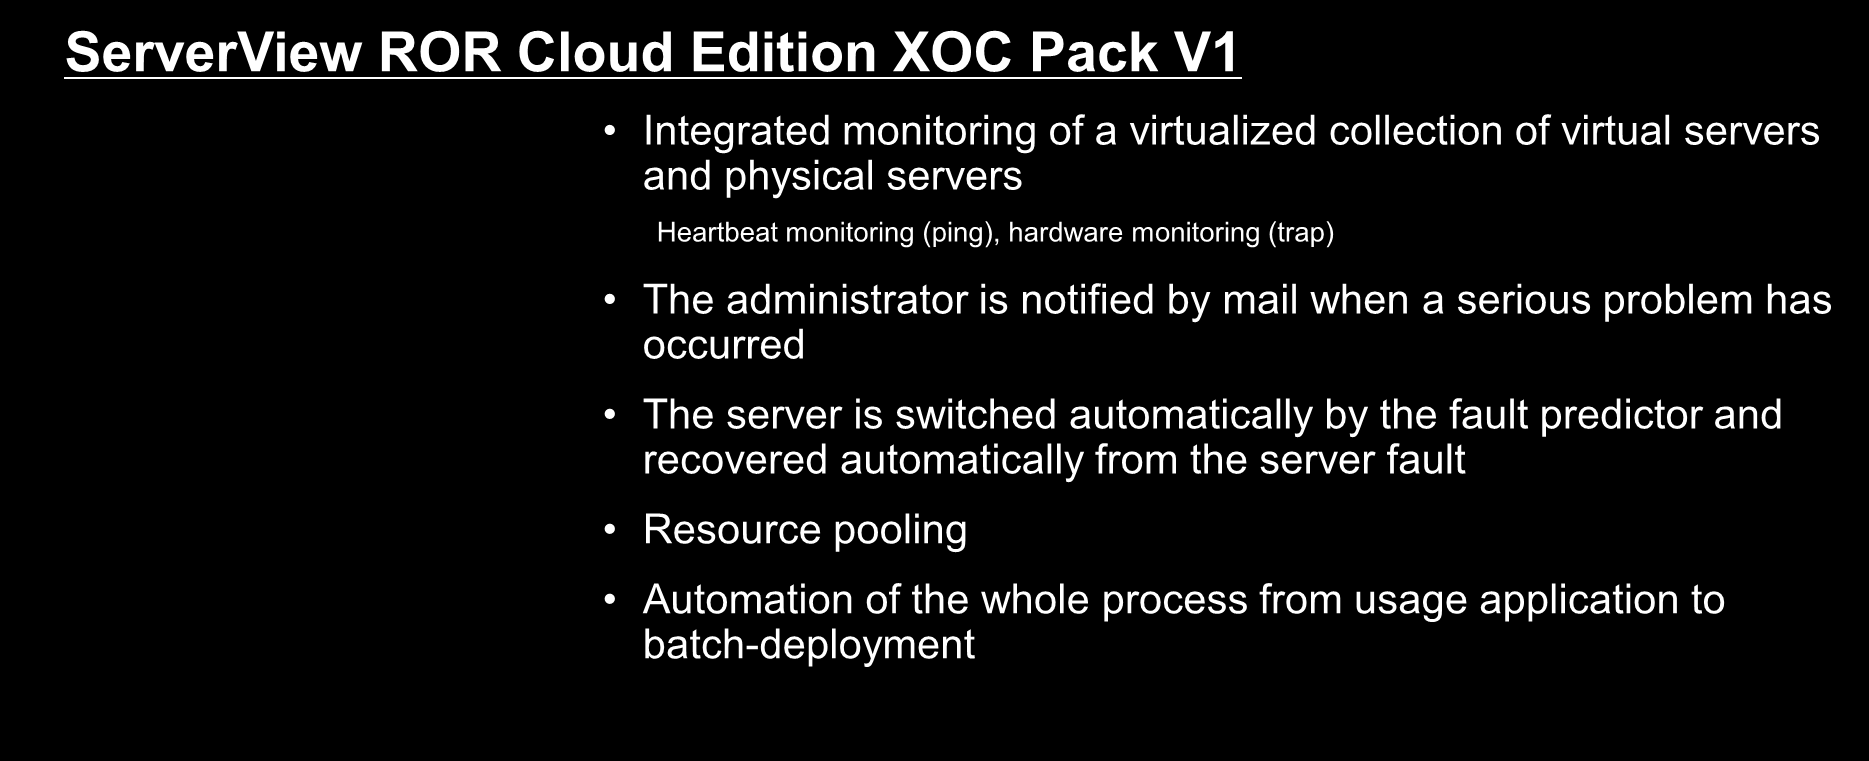 What ServerView ROR Cloud Edition XOC Pack V1 Can be Used For ServerView ROR Cloud Edition XOC Pack V1 Infrastructure monitoring Cloud infrastructure management Integrated monitoring of a virtualized